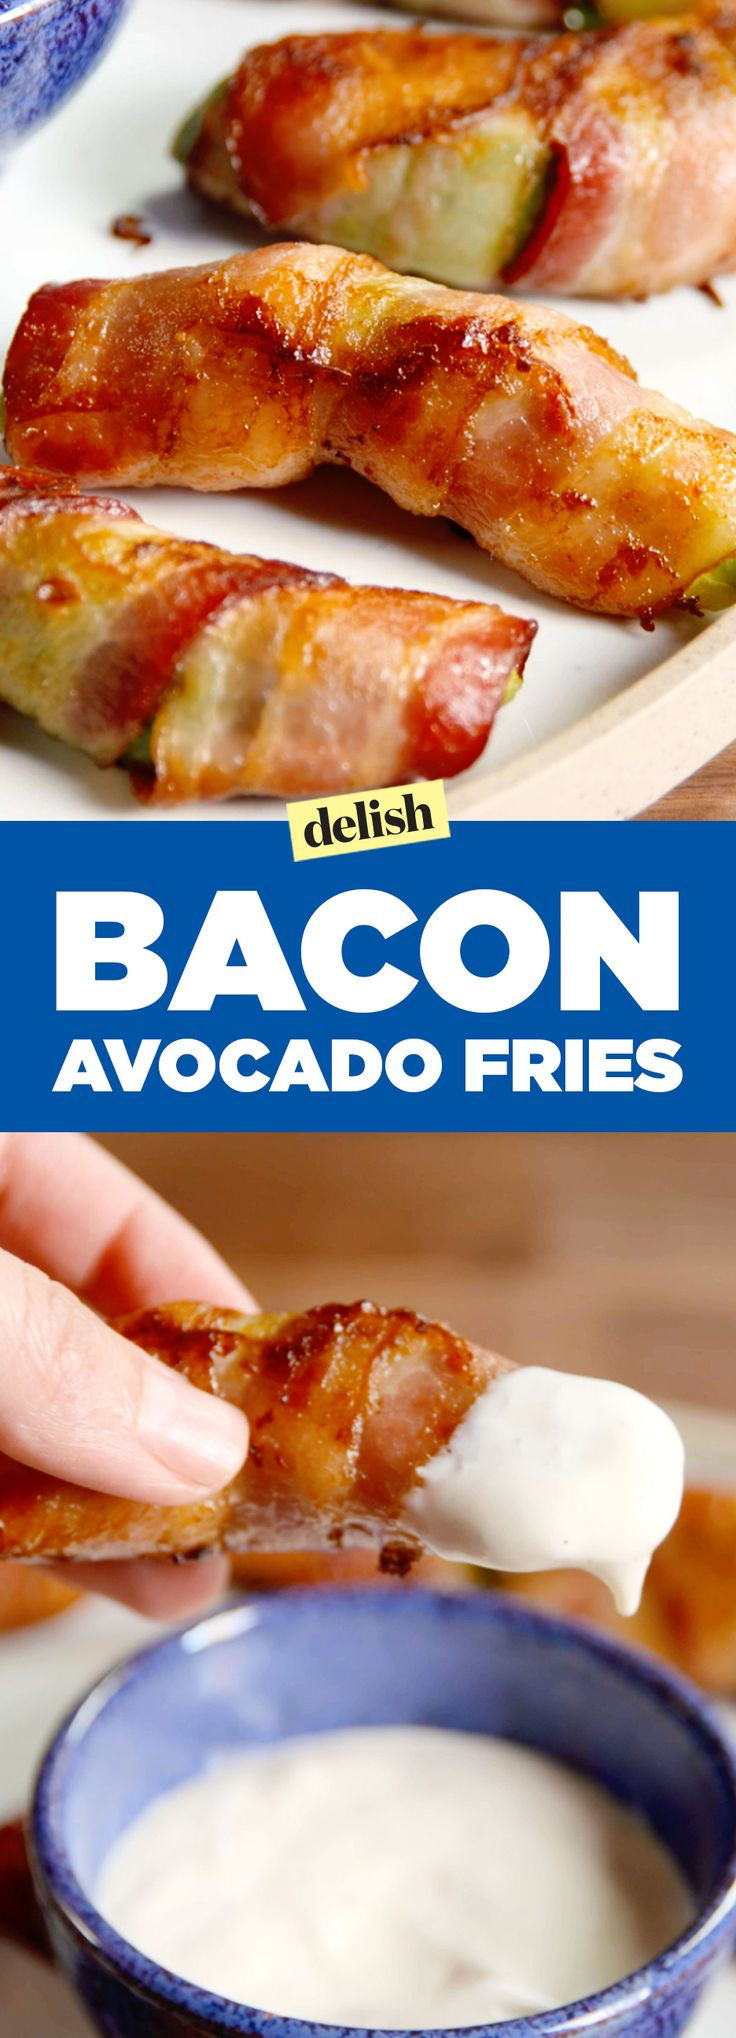 Bacon avocado fries are all of your favorite foods combined in one. Get the recipe on Delish.com.